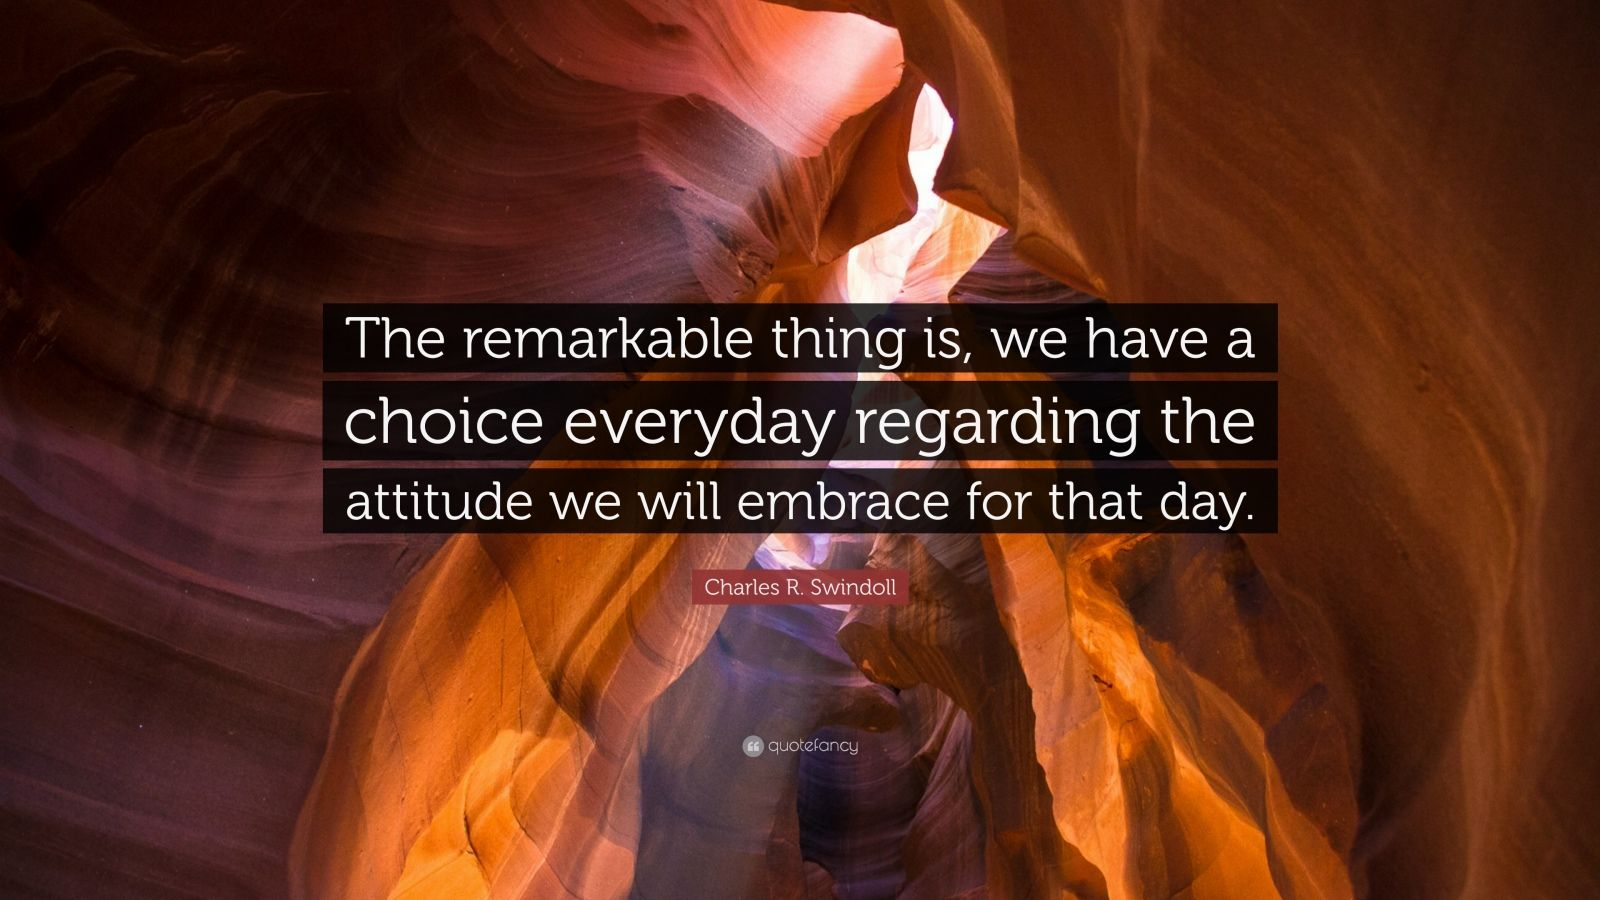 """Charles R. Swindoll Quote: """"The remarkable thing is, we have a choice everyday regarding the attitude we will embrace for that day."""""""